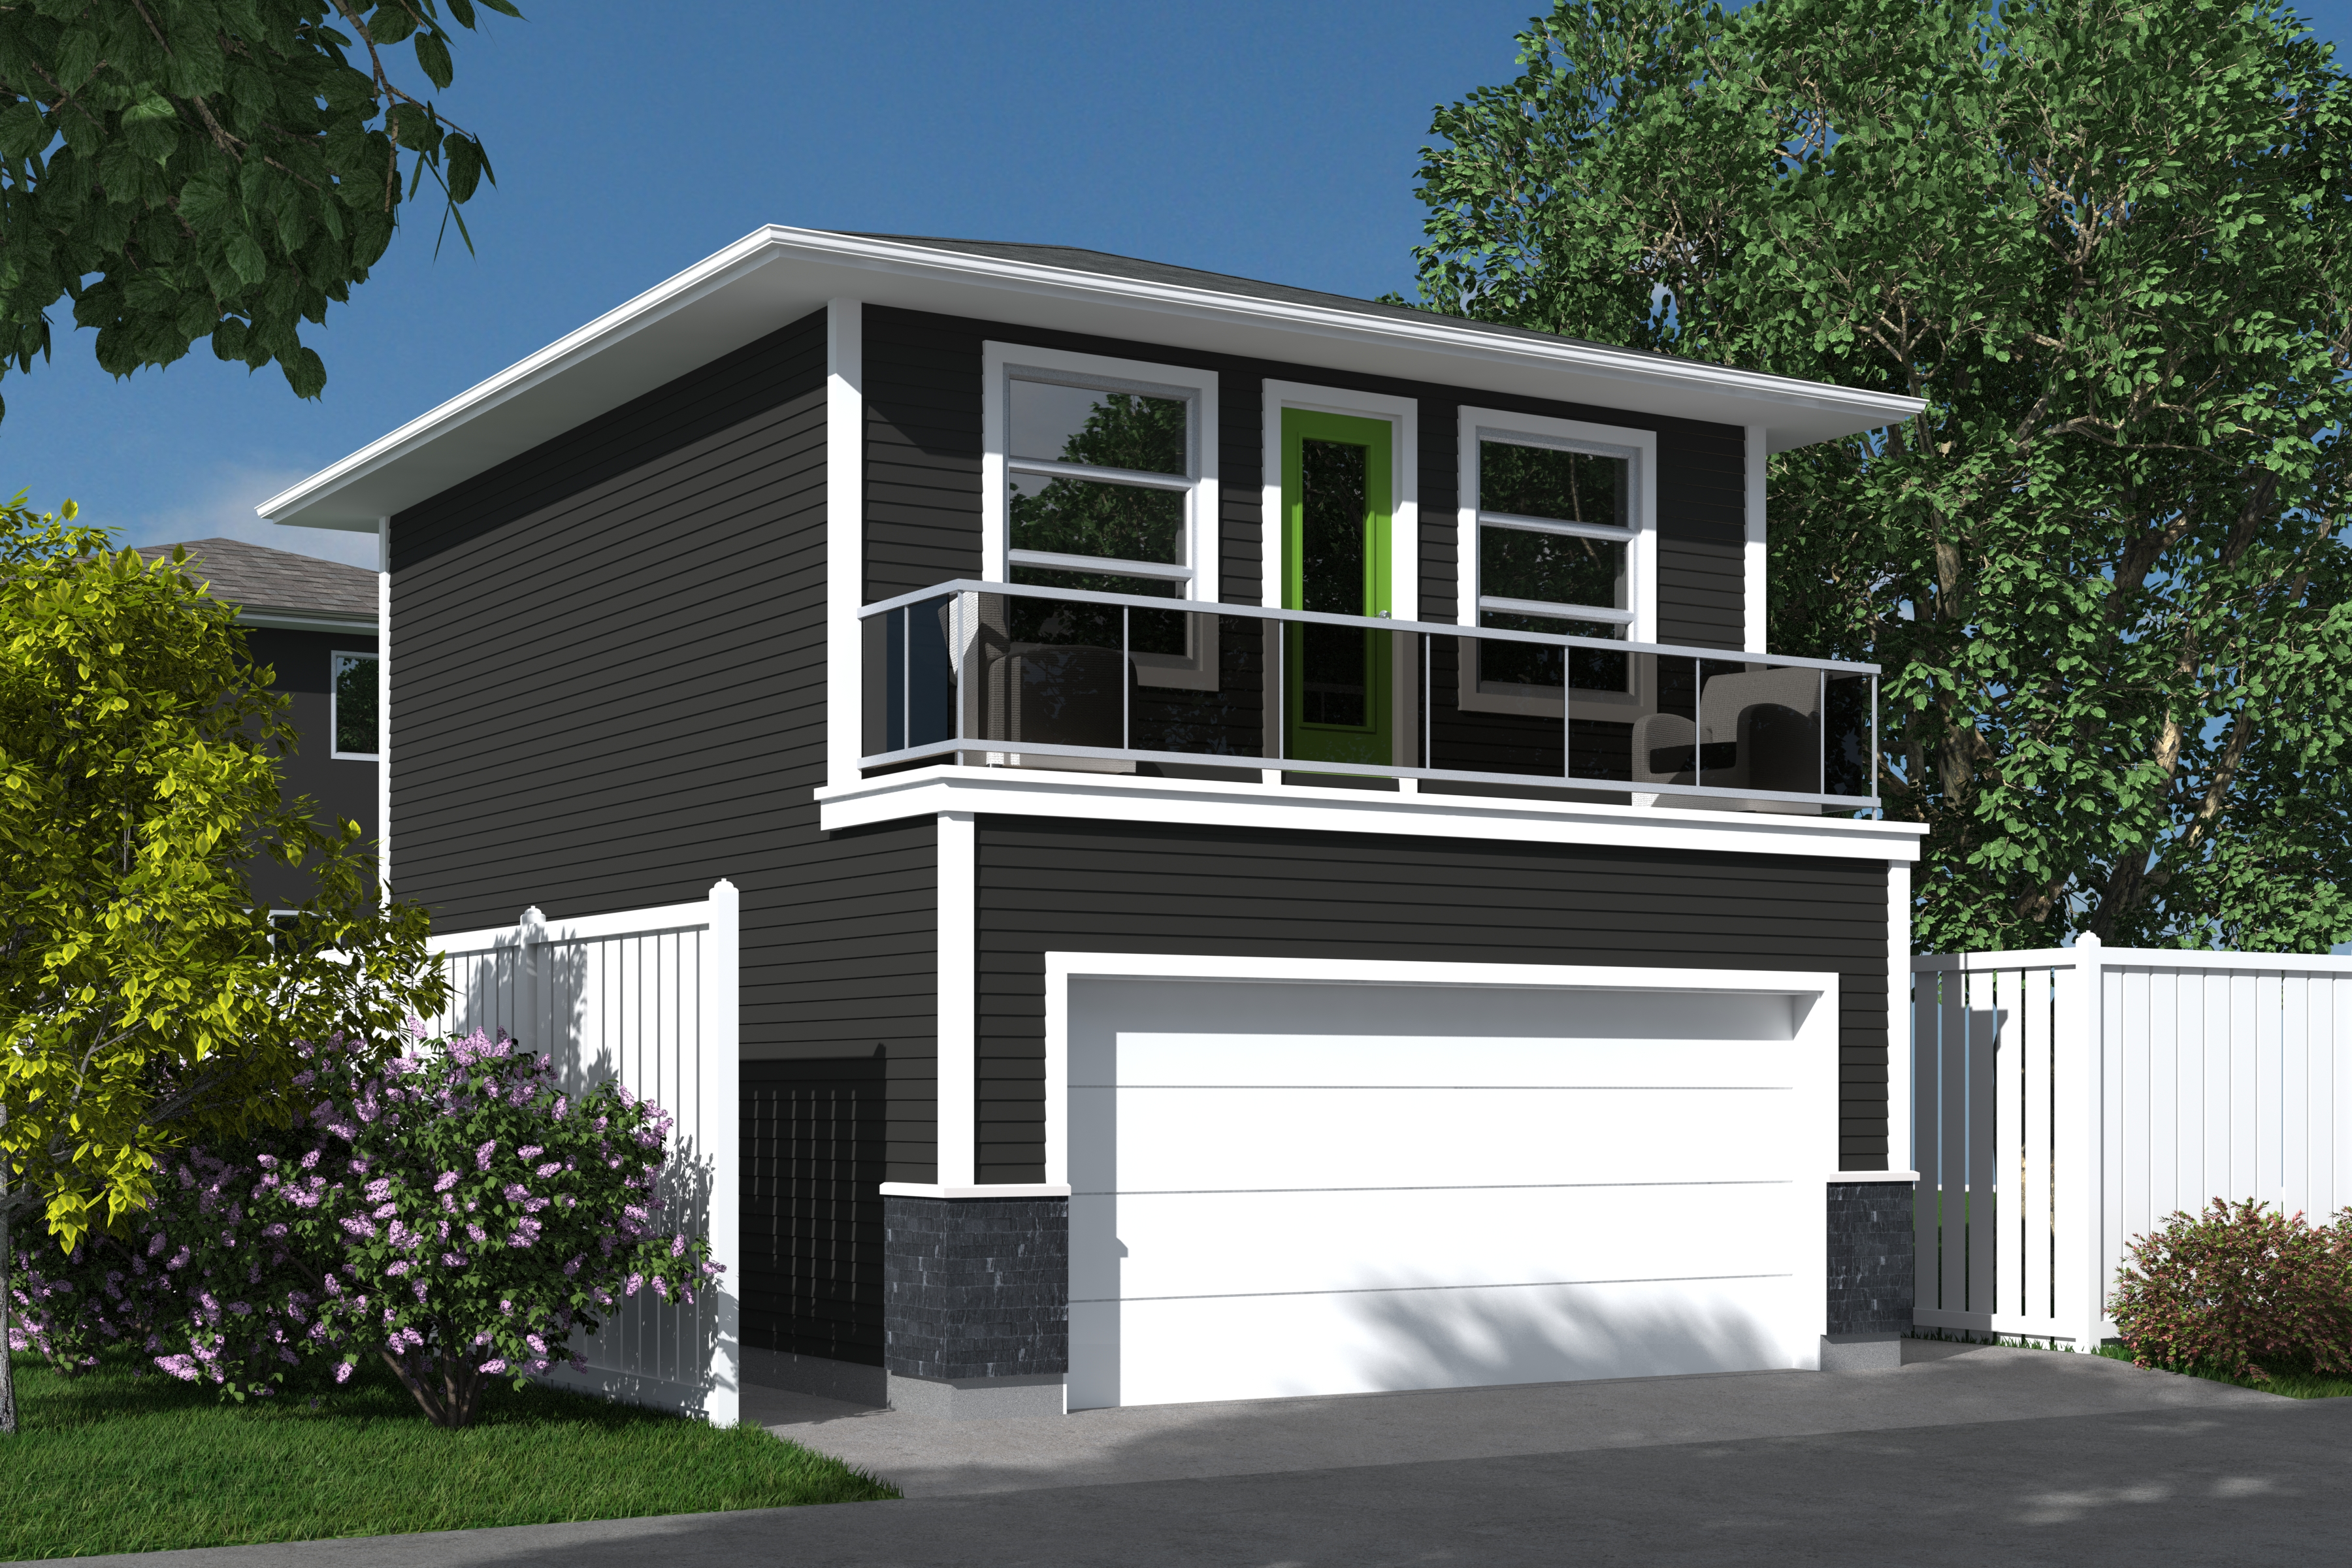 Contemporary viron 480 robinson plans Modern house plans with garage